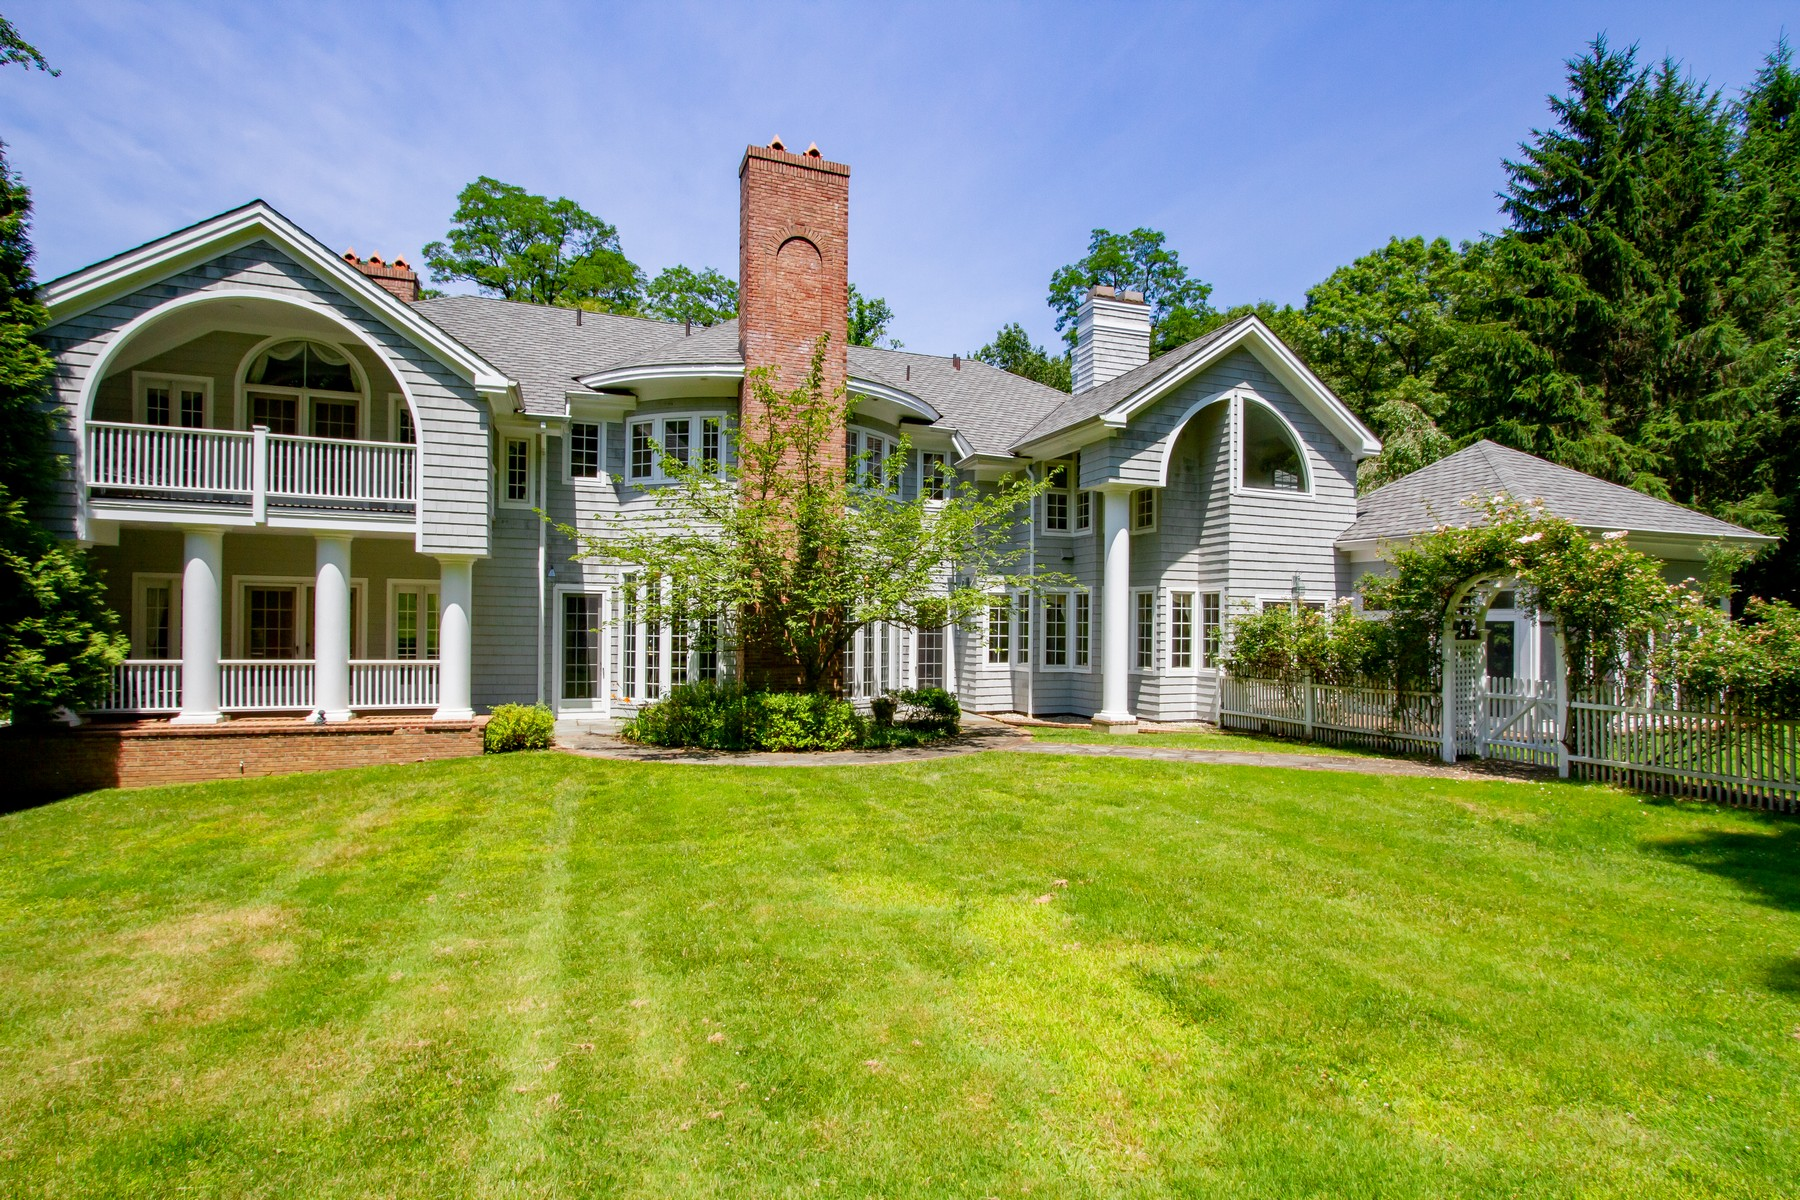 """Single Family Homes for Sale at """"High Meadows"""" 660 Cooper Rd Middletown, New Jersey 07716 United States"""